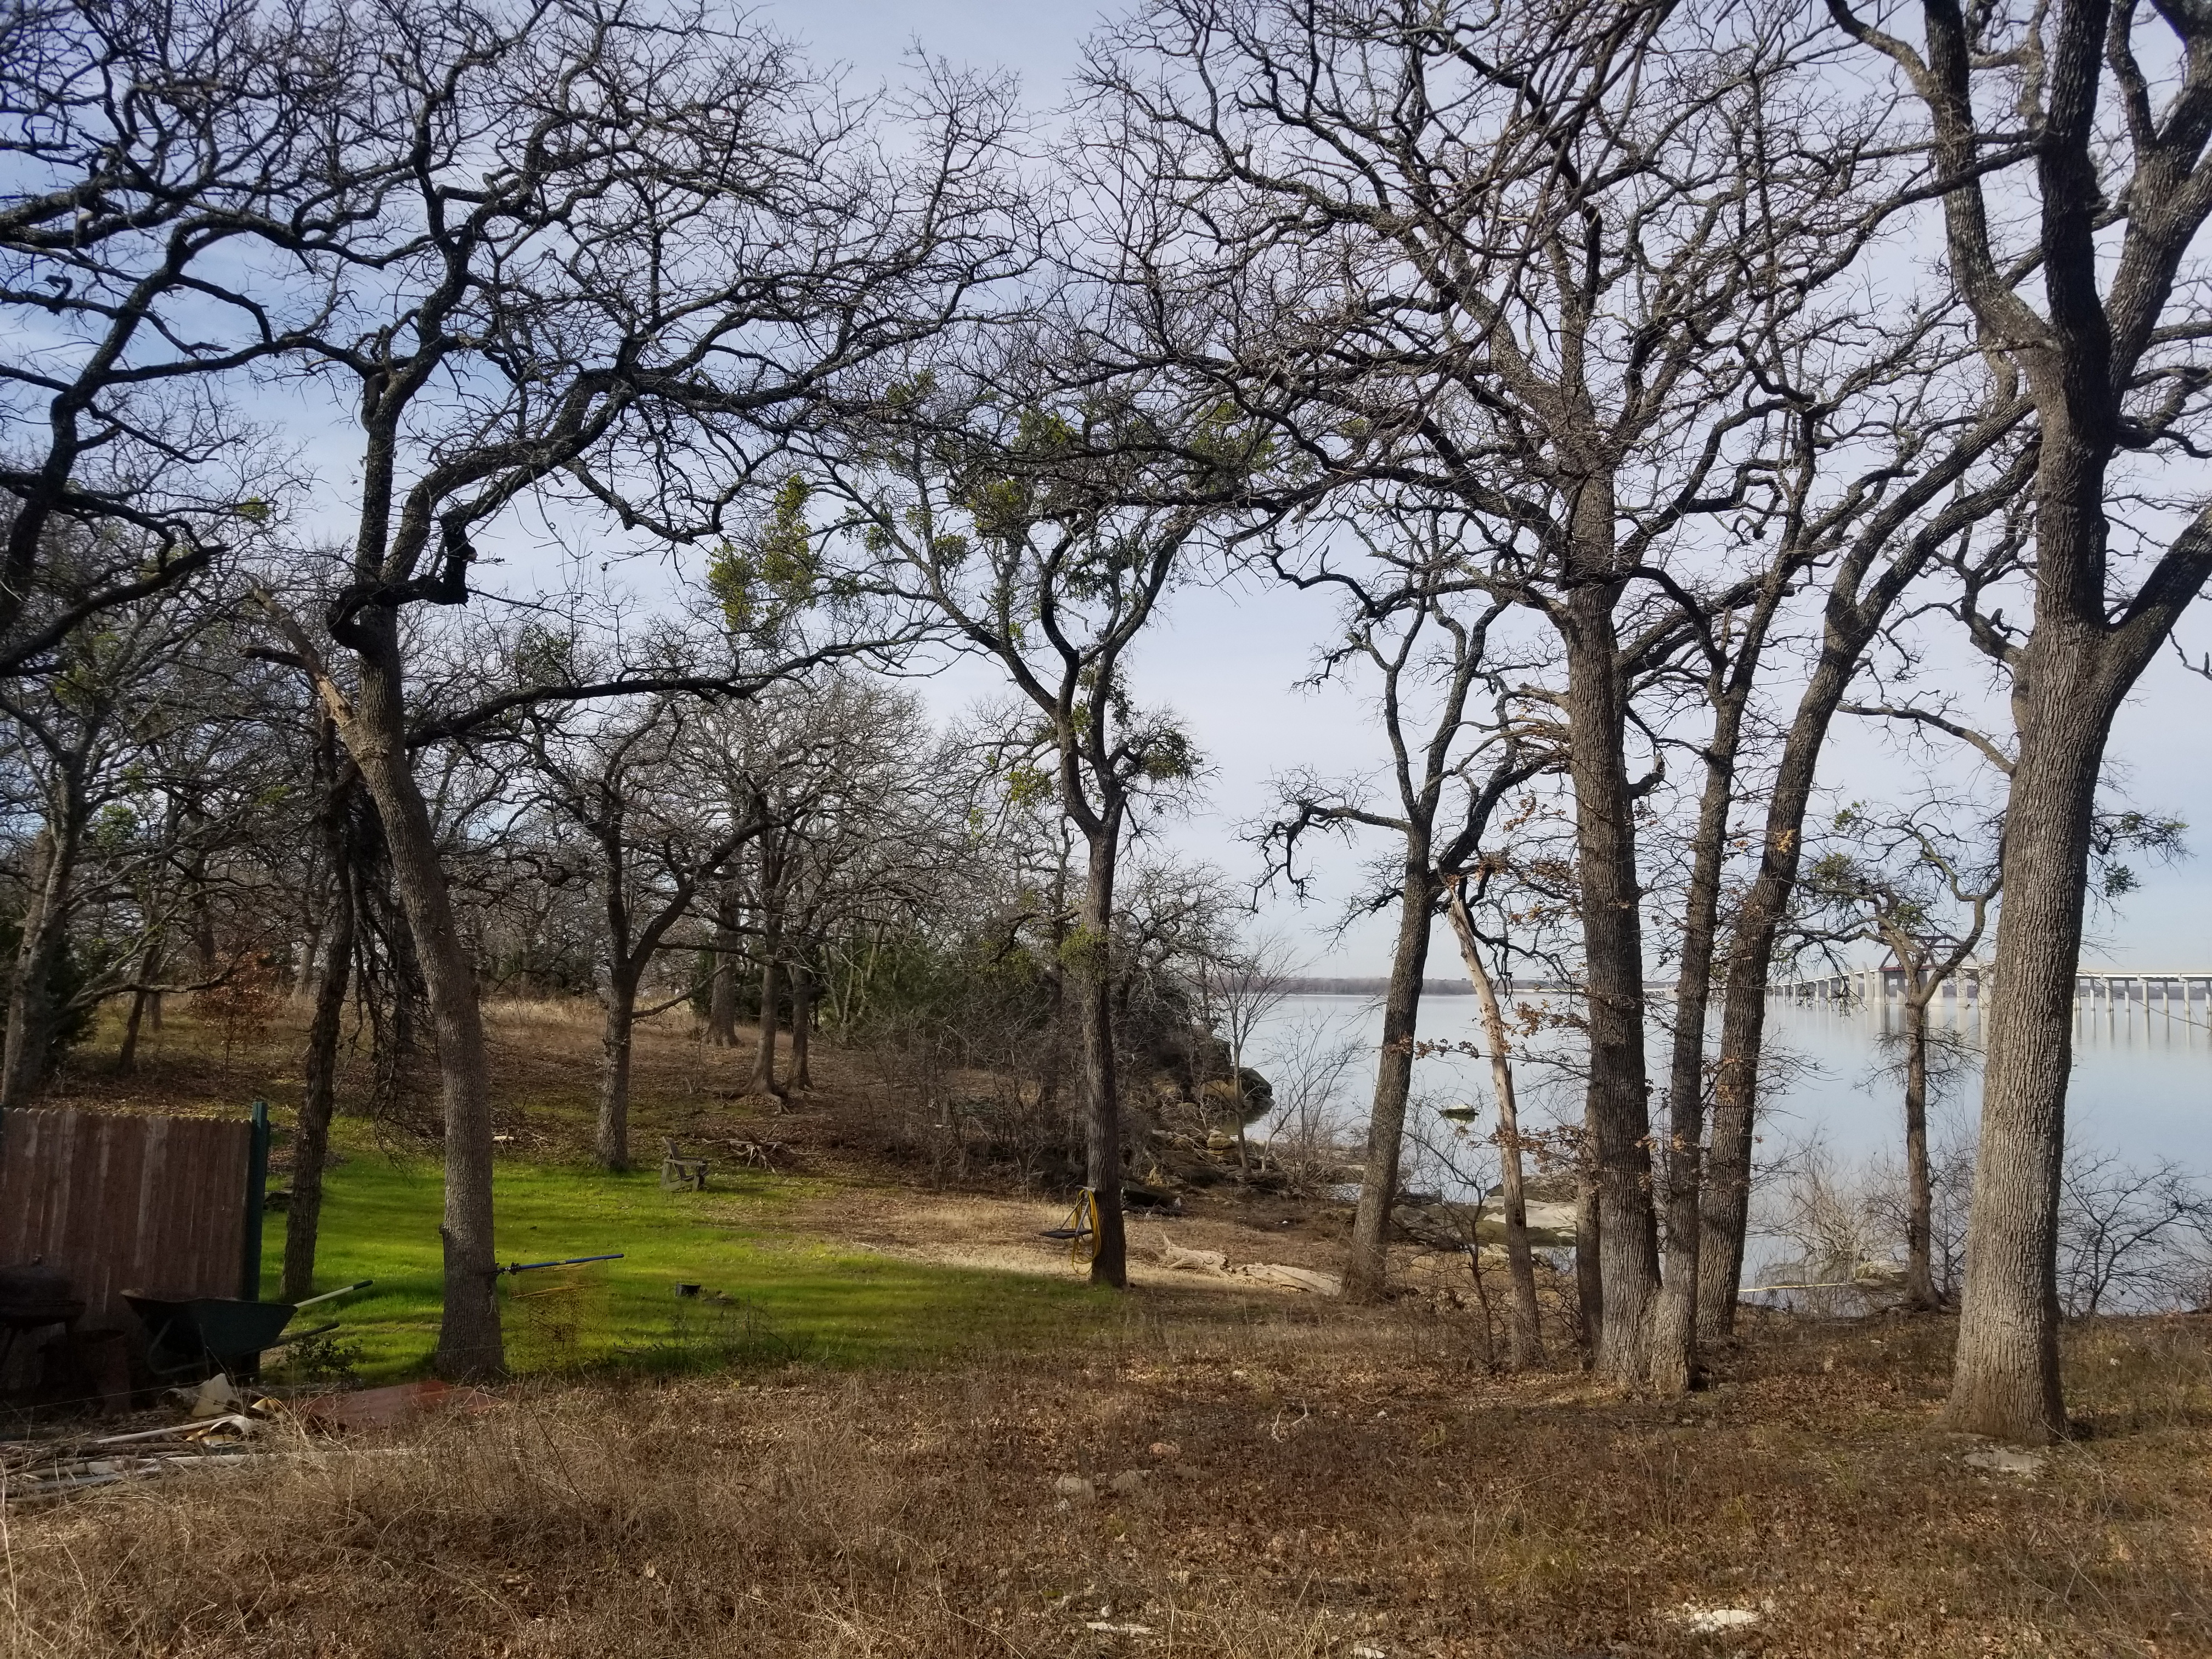 This lakefront lot has lots of native, Texas grass sprinkled with a few trees.